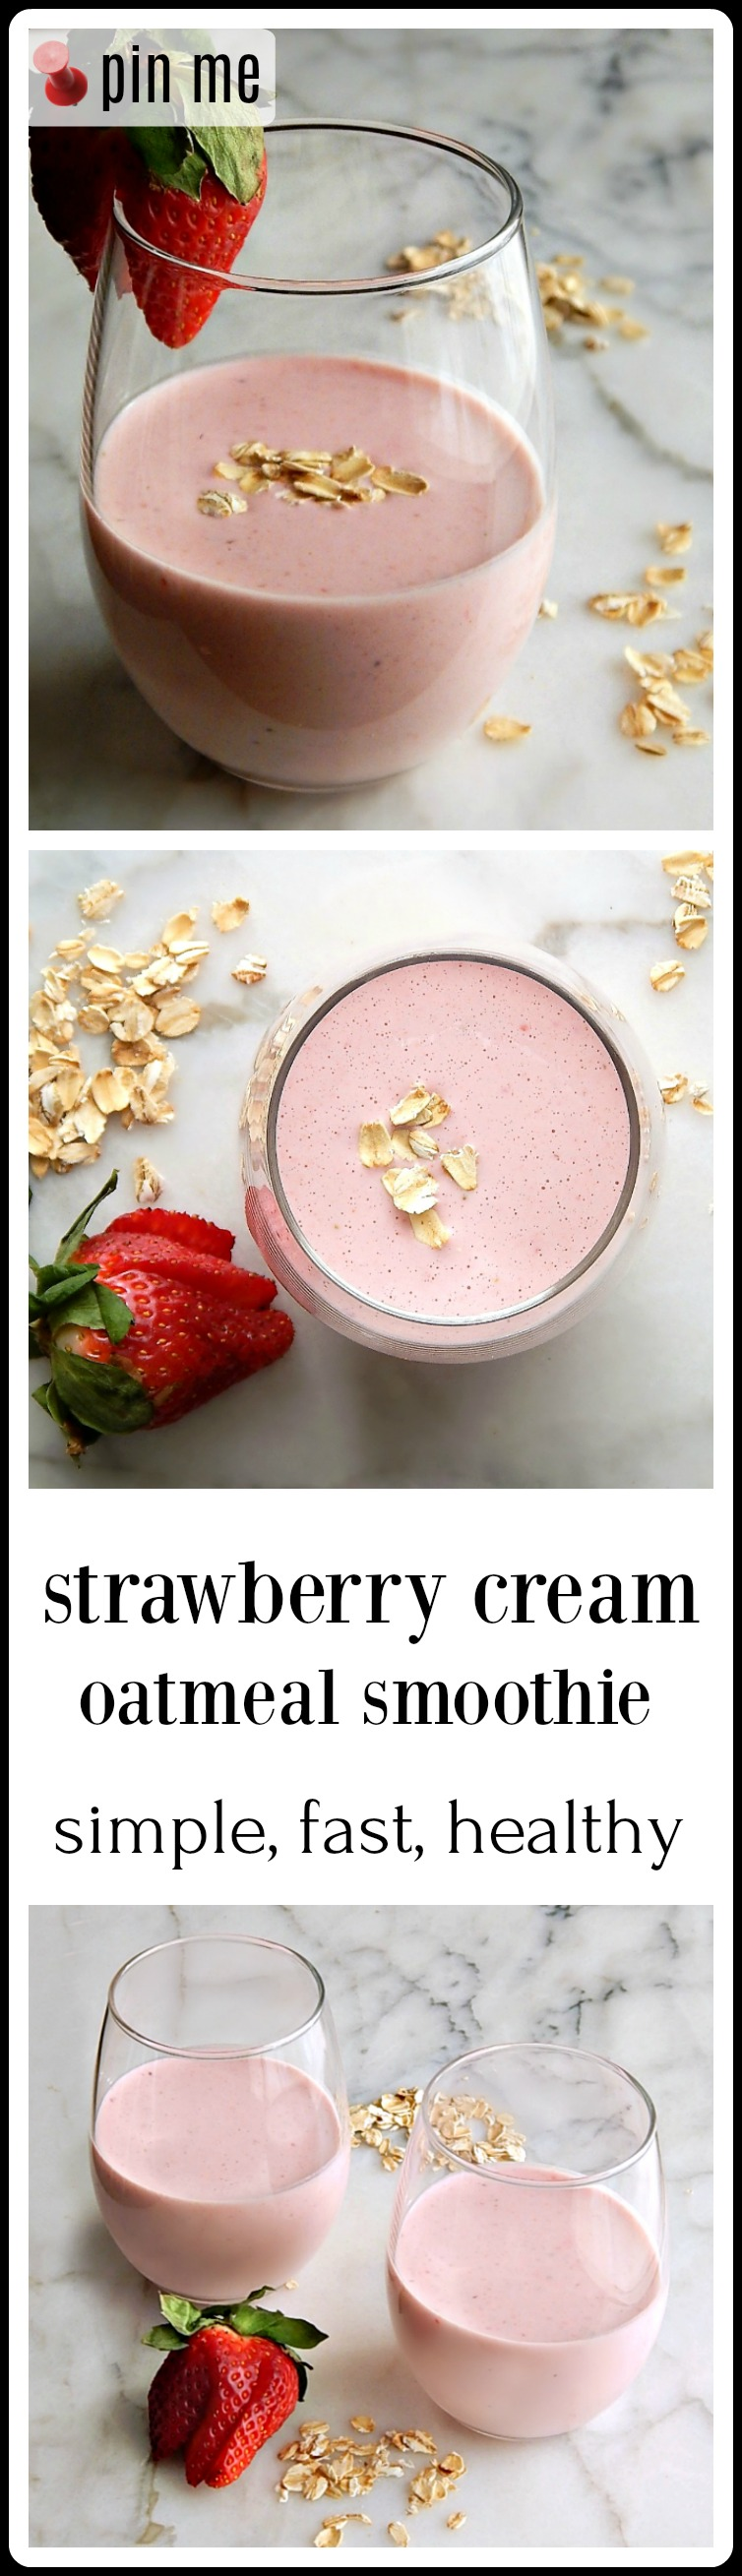 Strawberry Cream Oatmeal Smoothie: super simple, full of healthy, natural ingredients and is ready in a shake! And you don't need any frozen ingredients! Bonus.